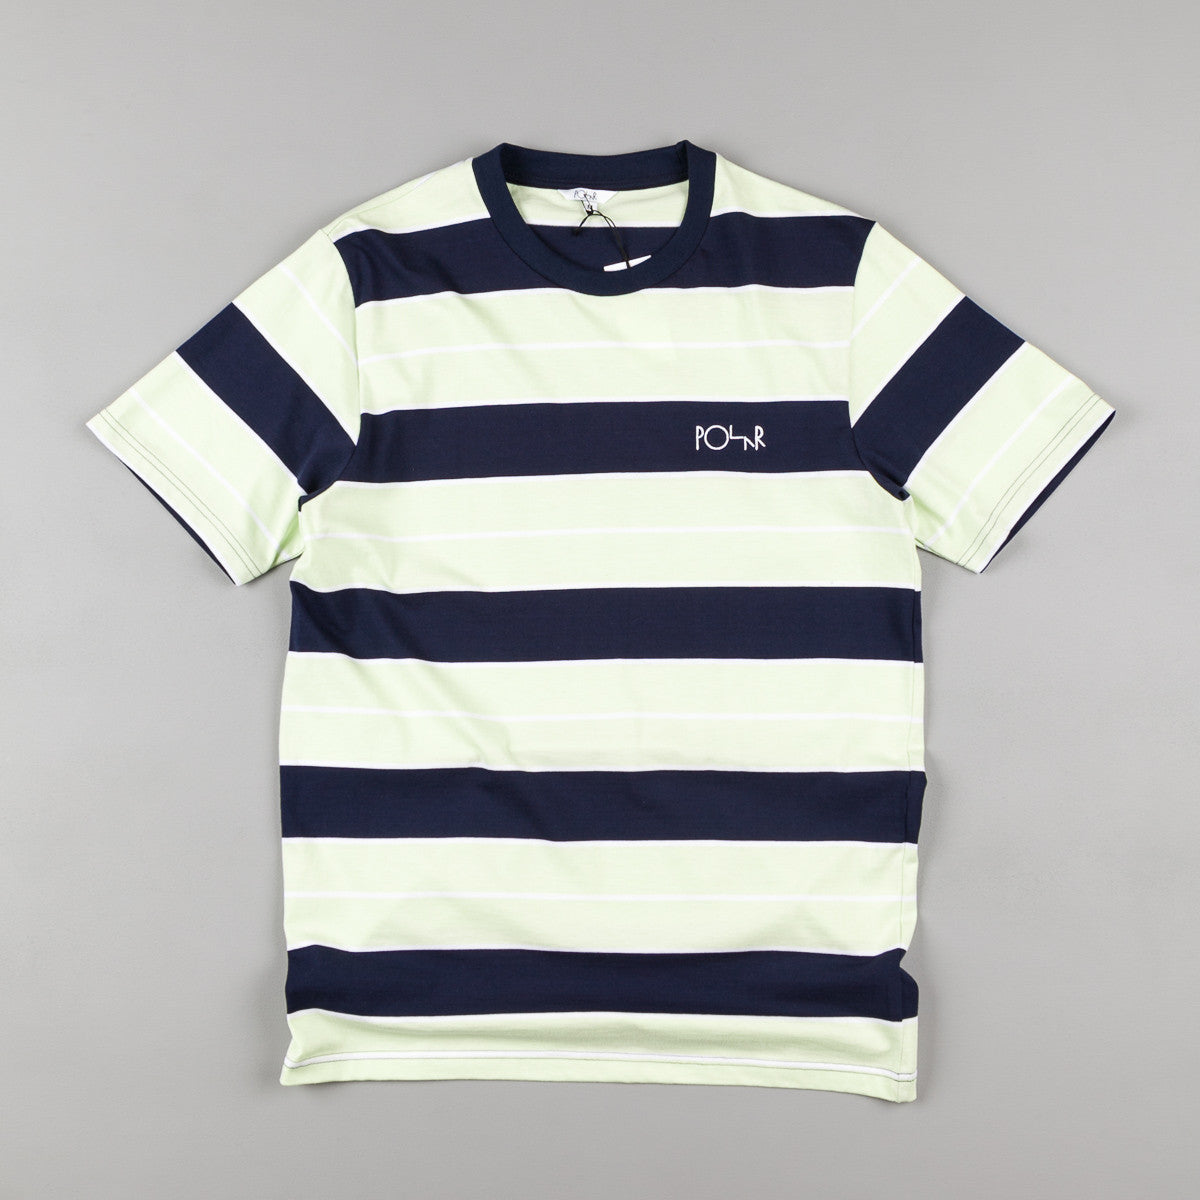 Polar Dane T-Shirt - Navy / Mint